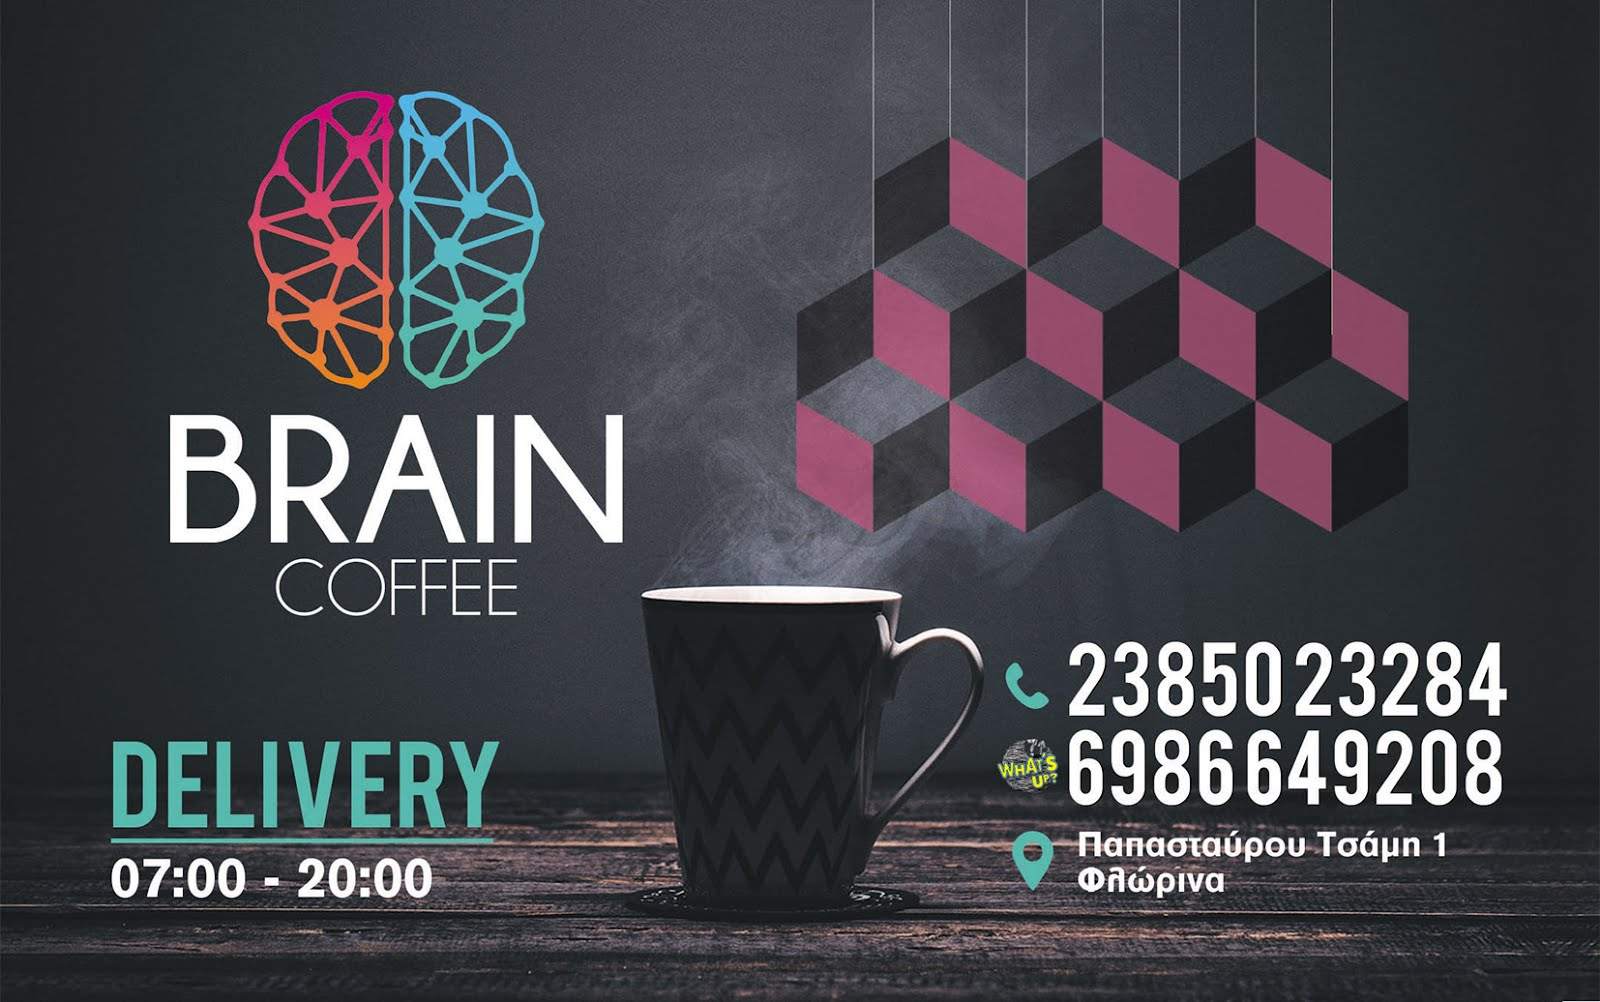 BRAIN Coffe - Delivery